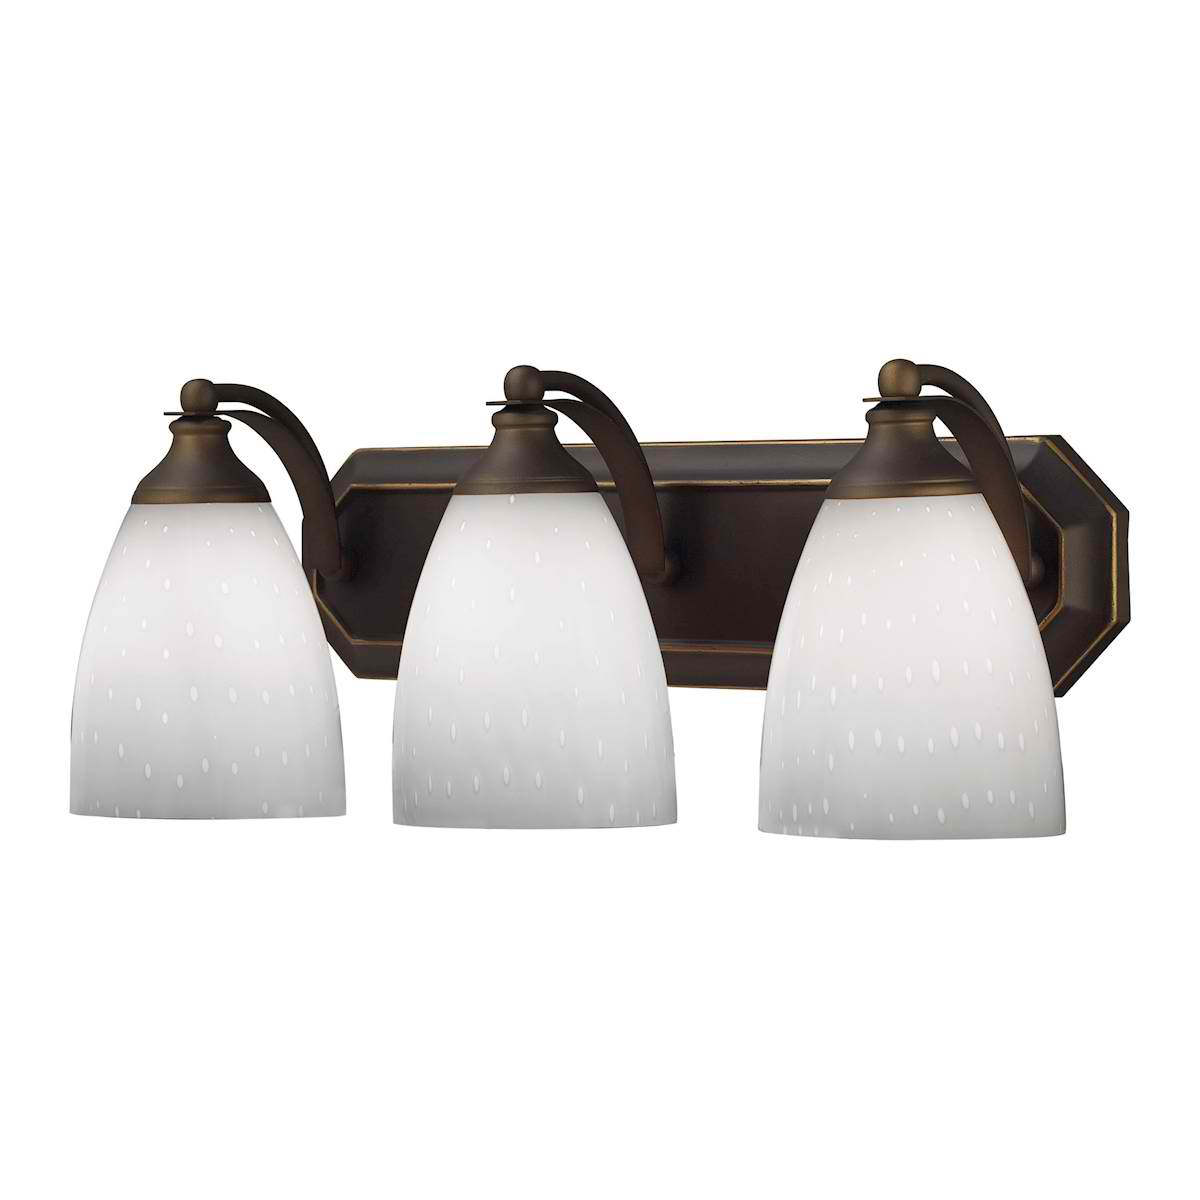 Vanity 3 Light Aged Bronze with Simple White Glass